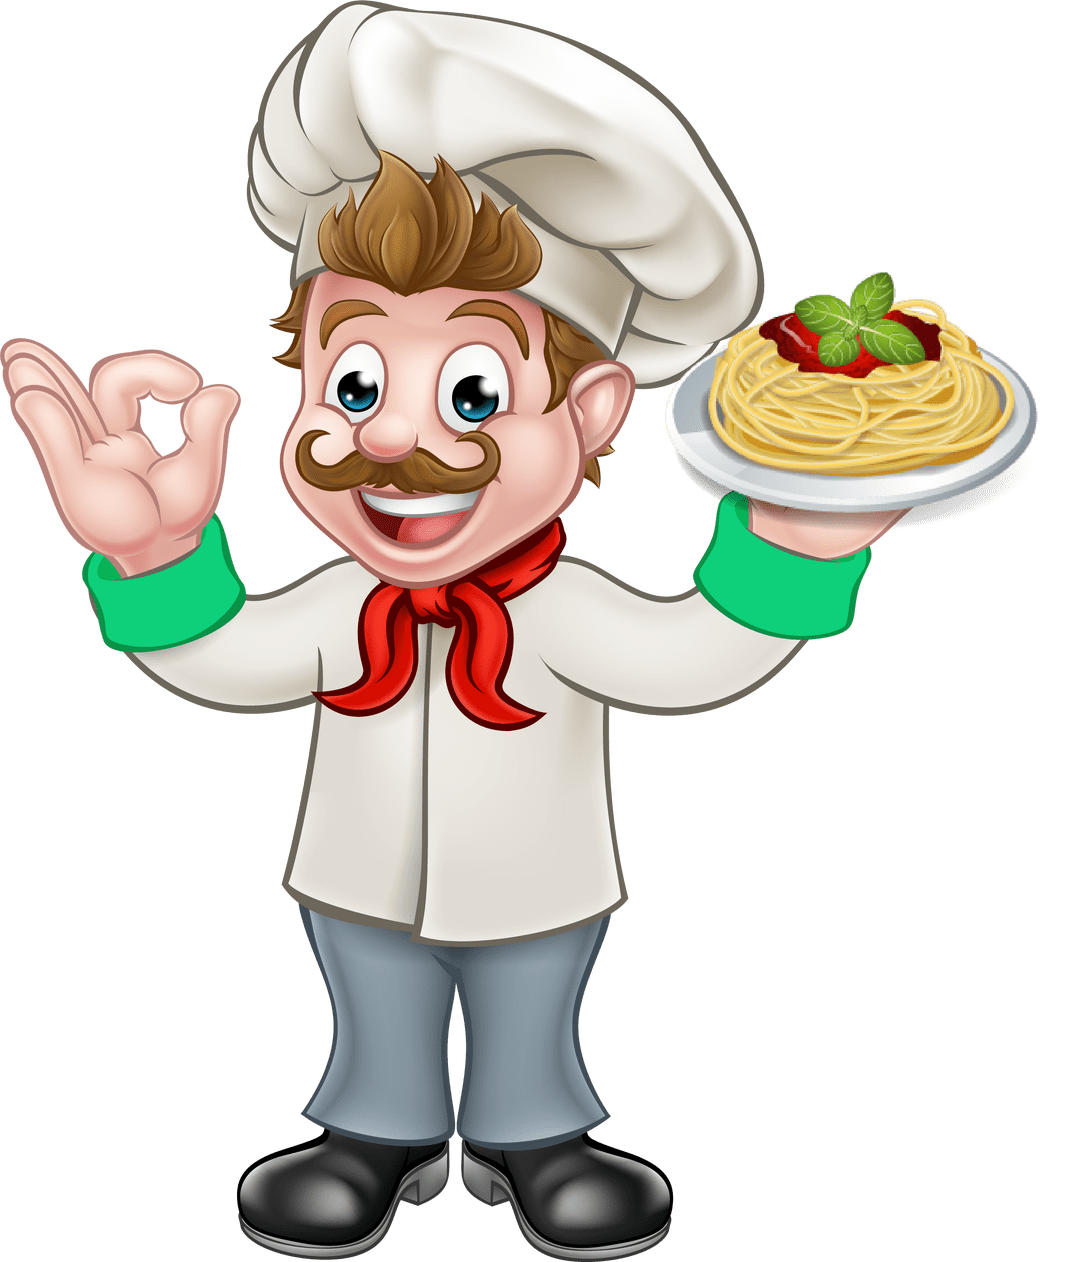 clip royalty free library Russo s pizza a. Catering clipart kitchen chef.